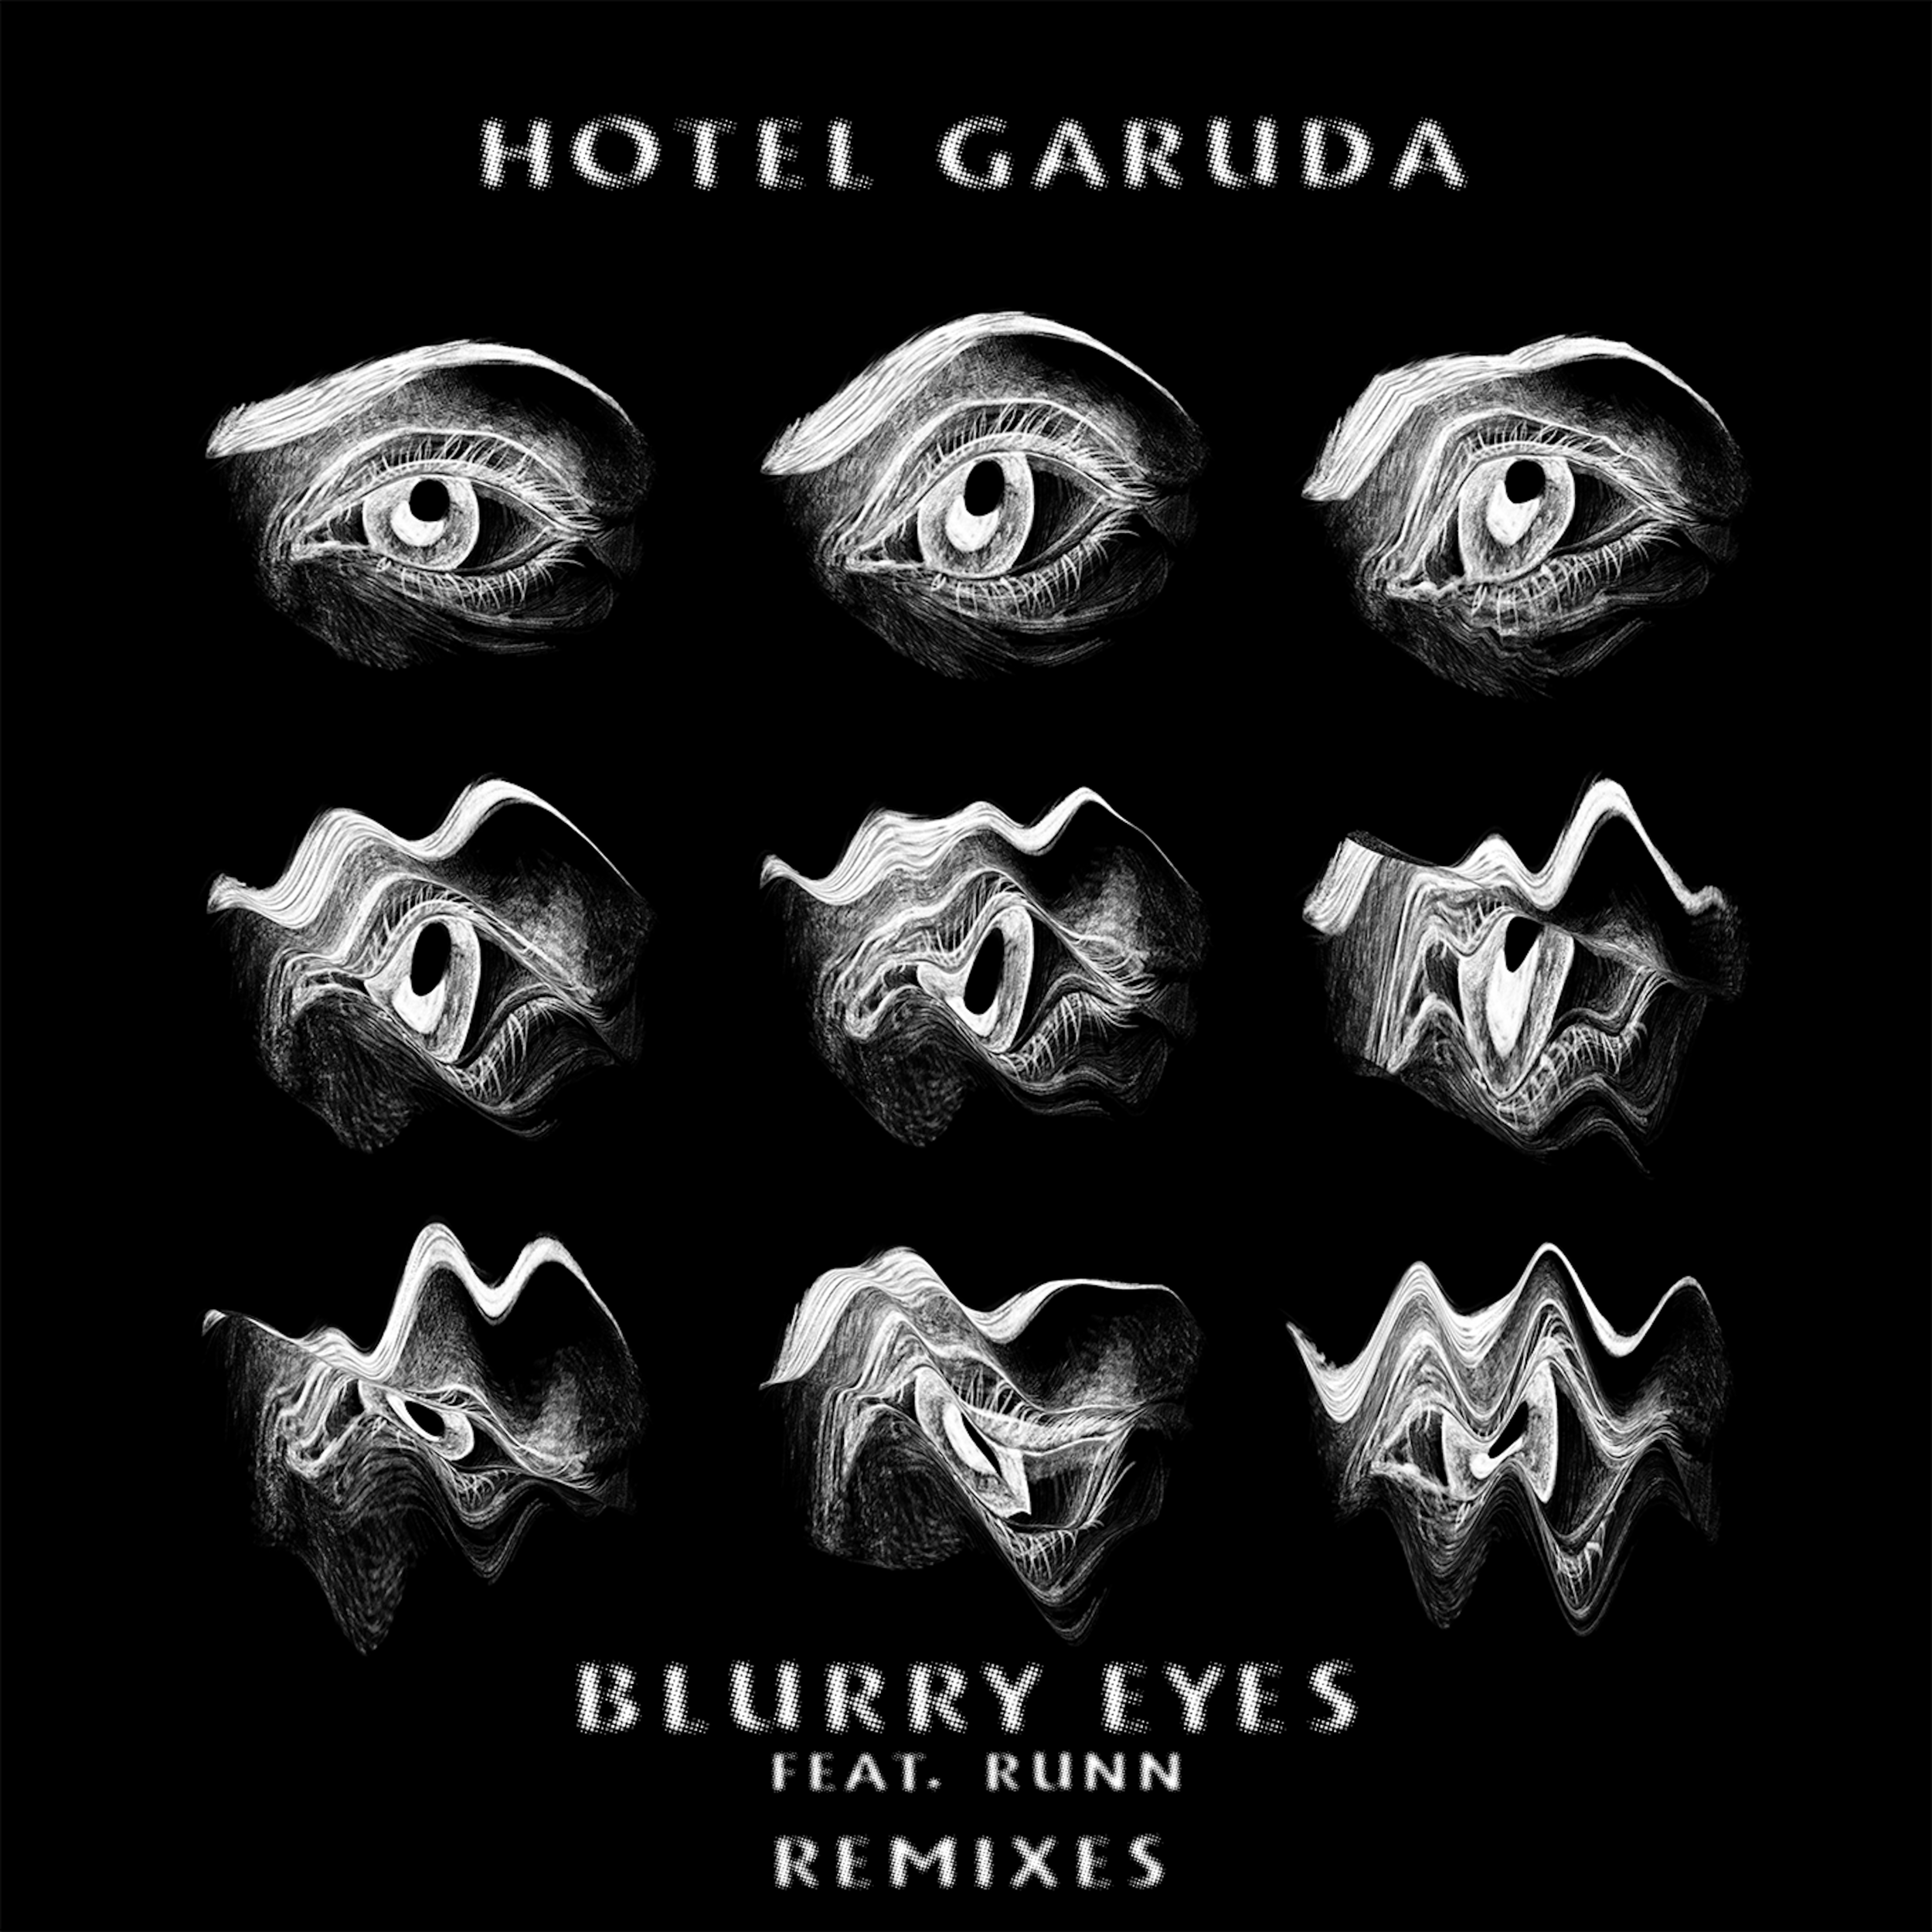 blurry eyes remixes.png